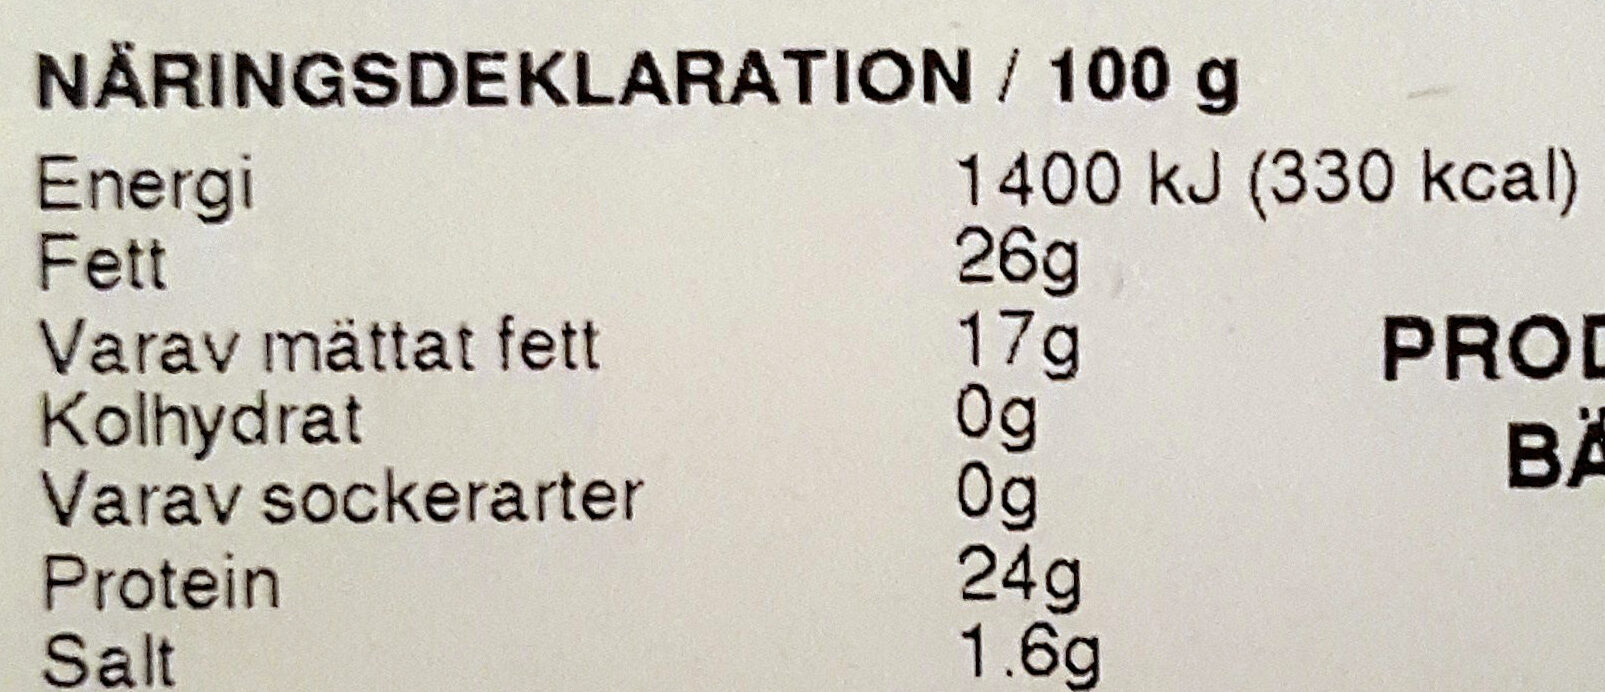 Hushållsost Mild - Nutrition facts